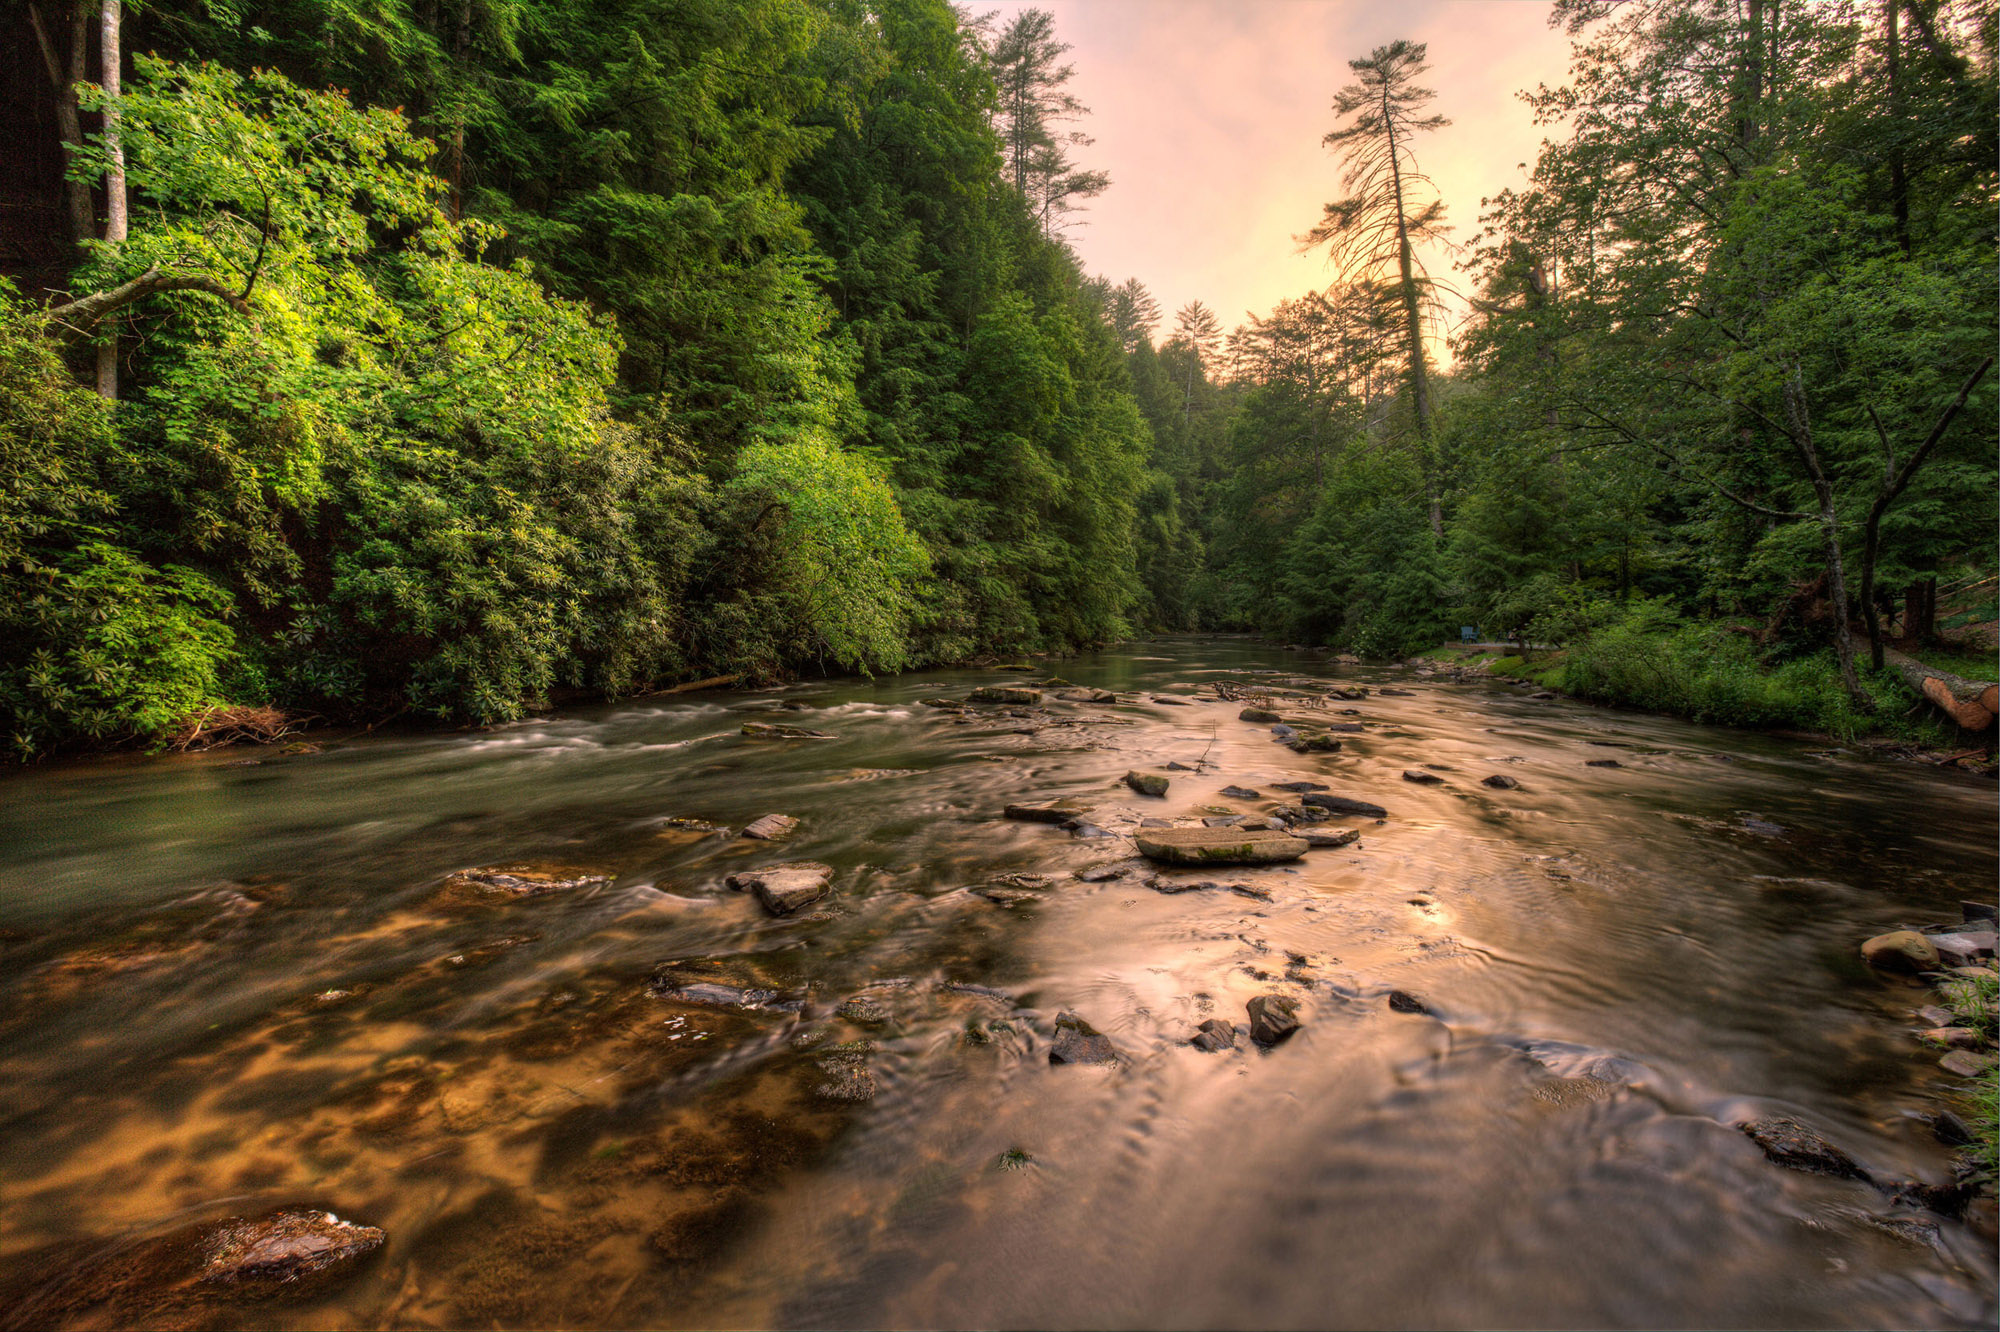 Coosawattee River in Ellijay, Georgia. Photo by Rick Lucas